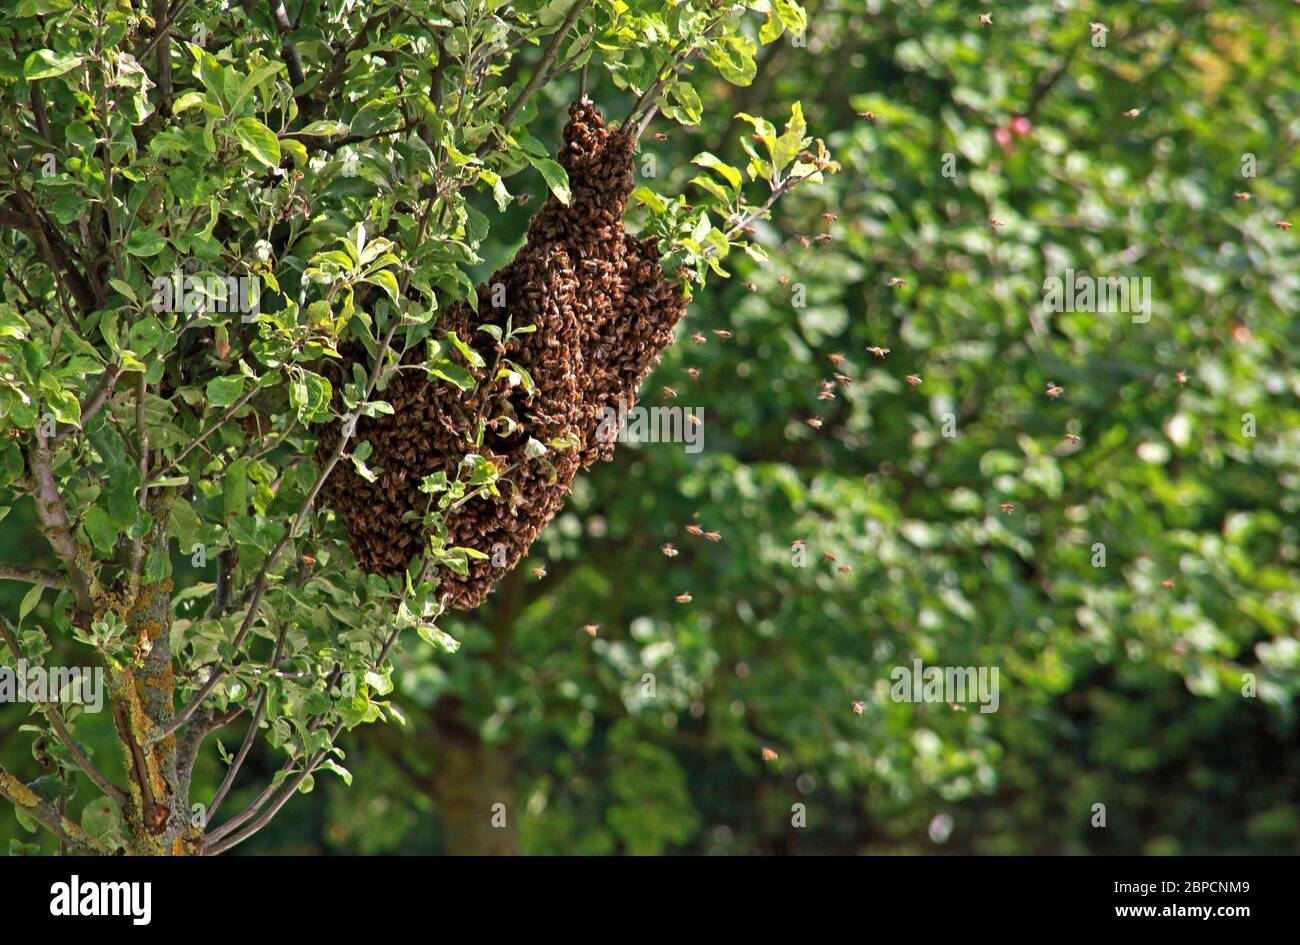 HotpixUK,@HotpixUK,GoTonySmith,in summer,Cheshire,England,UK,Bee,swarming,on apple trees,apple trees,trees,tree,summer,resting,buz,drone,drones,bee queen,camouflaged,swarming signs